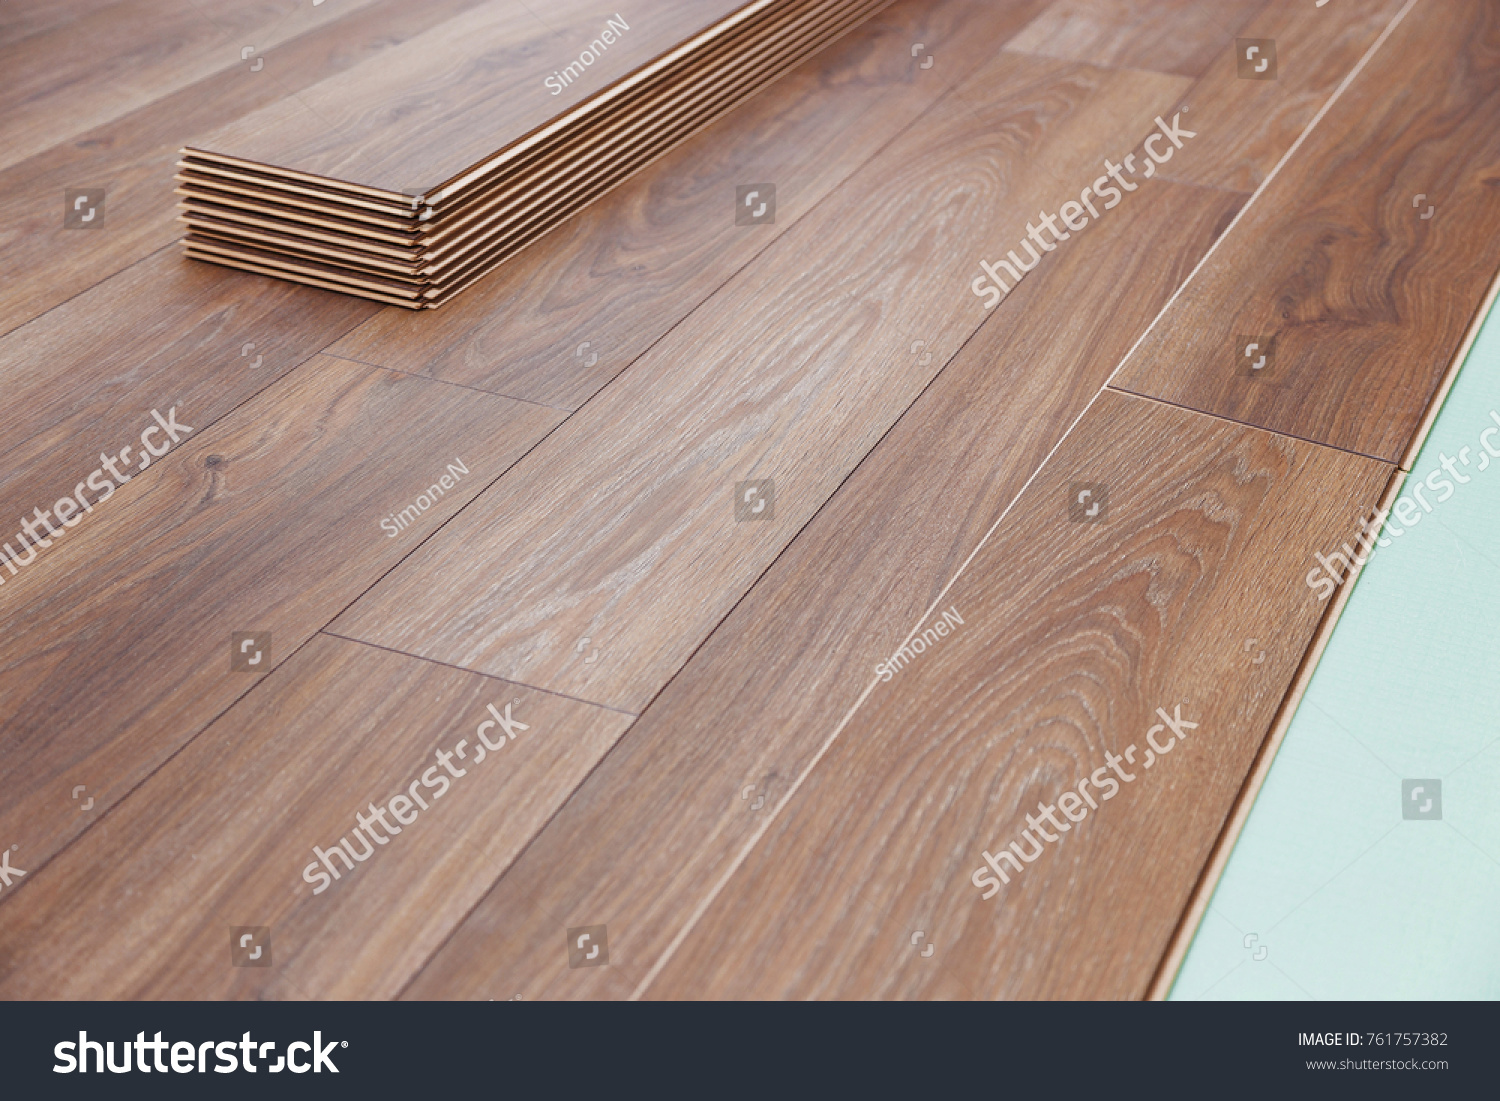 Installing Wooden Laminate Flooring With Soundproofing Sheets Laying